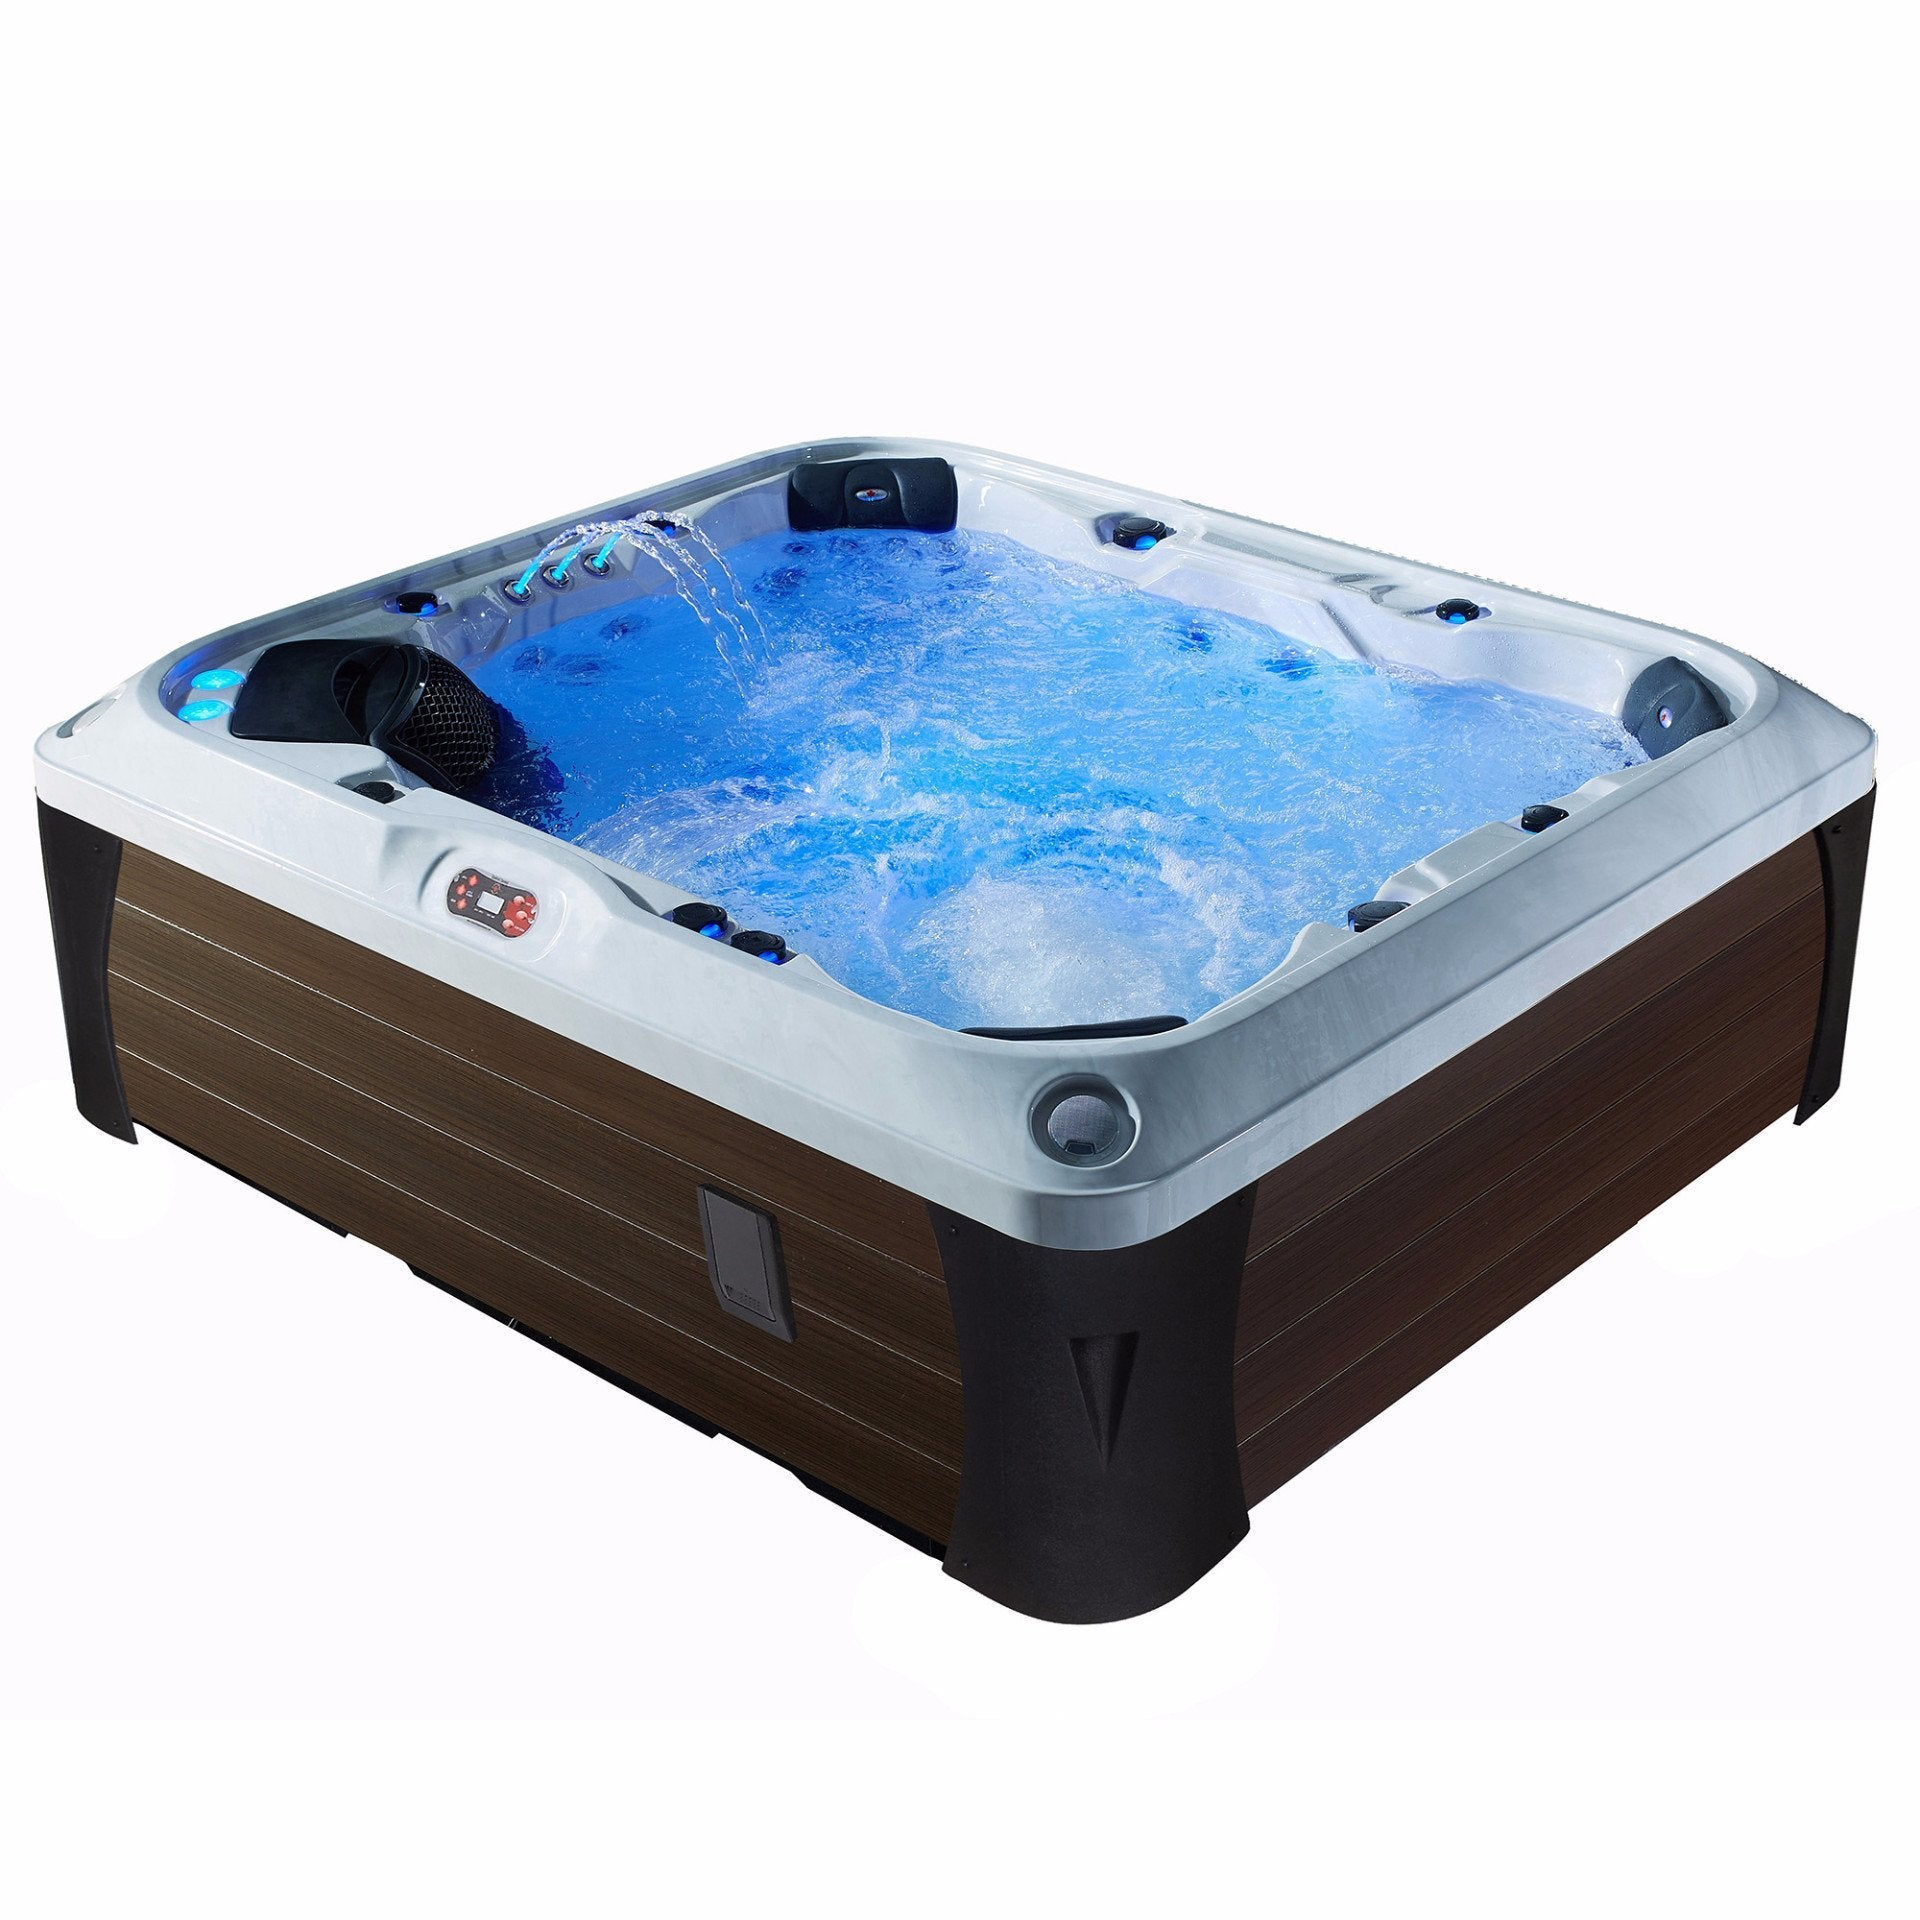 Kingston SE 55 Jet 7 Person Spa w/ LED and bluetooth speakers